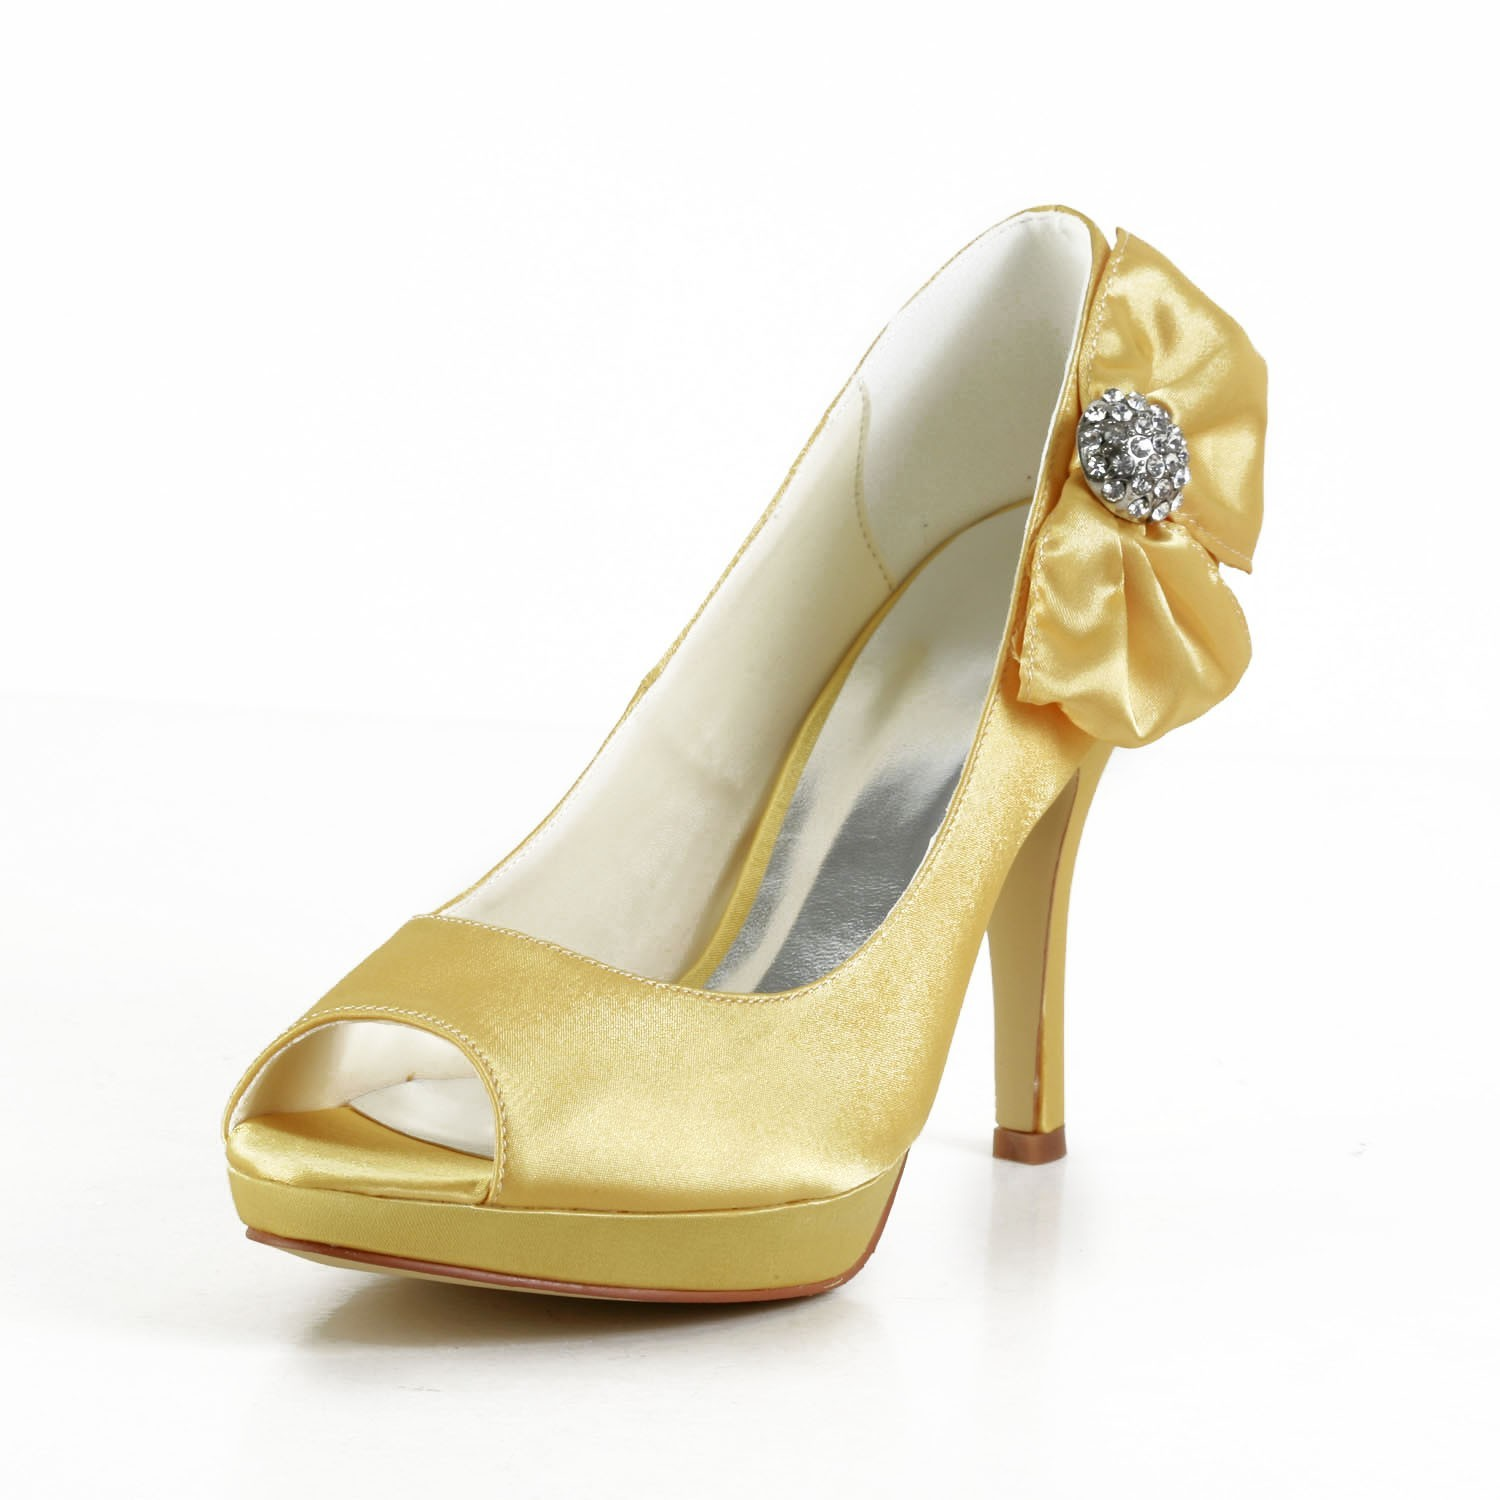 women s satin stiletto heel peep toe platform gold wedding shoes with bowknot s a